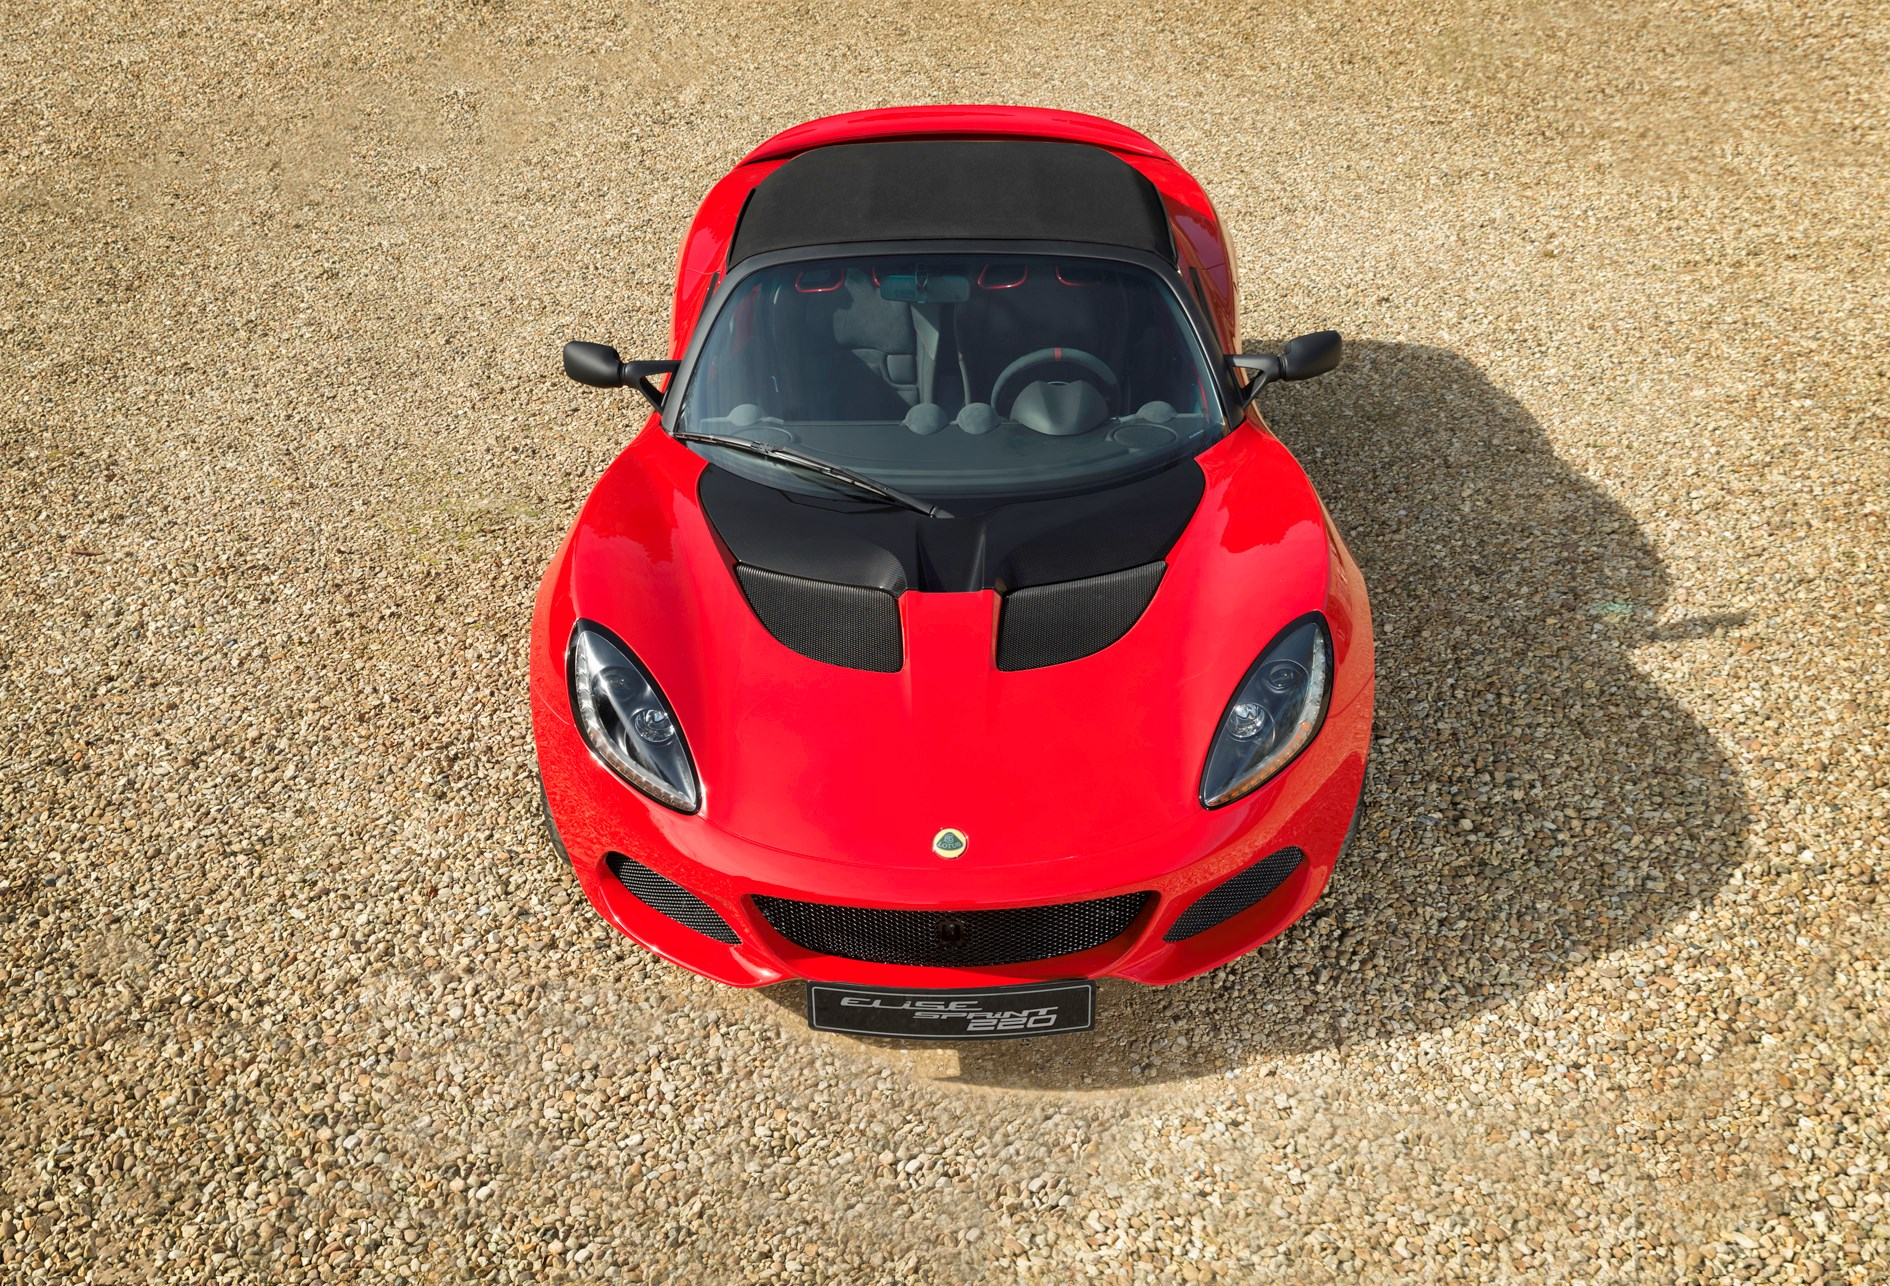 Lotus takes even lighter touch with new Elise Sprint